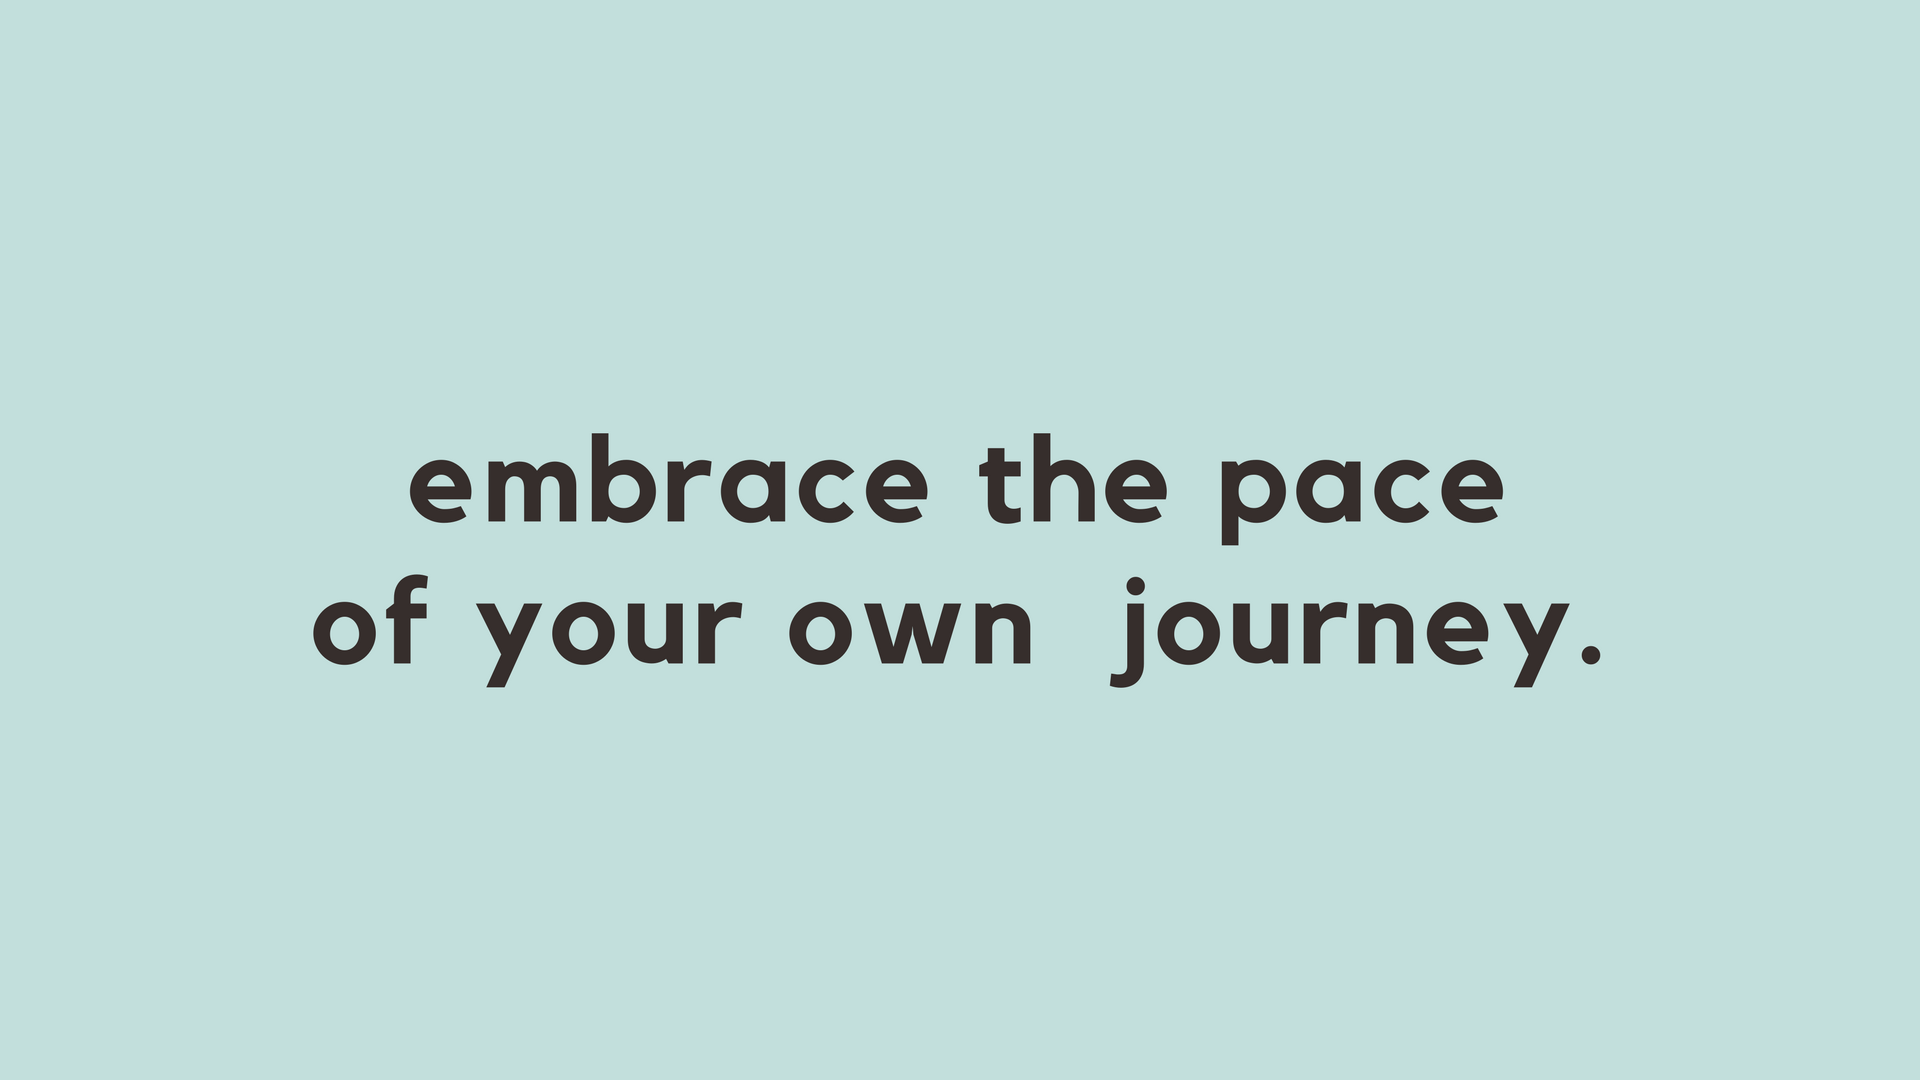 Embrace the pace of your own journey.